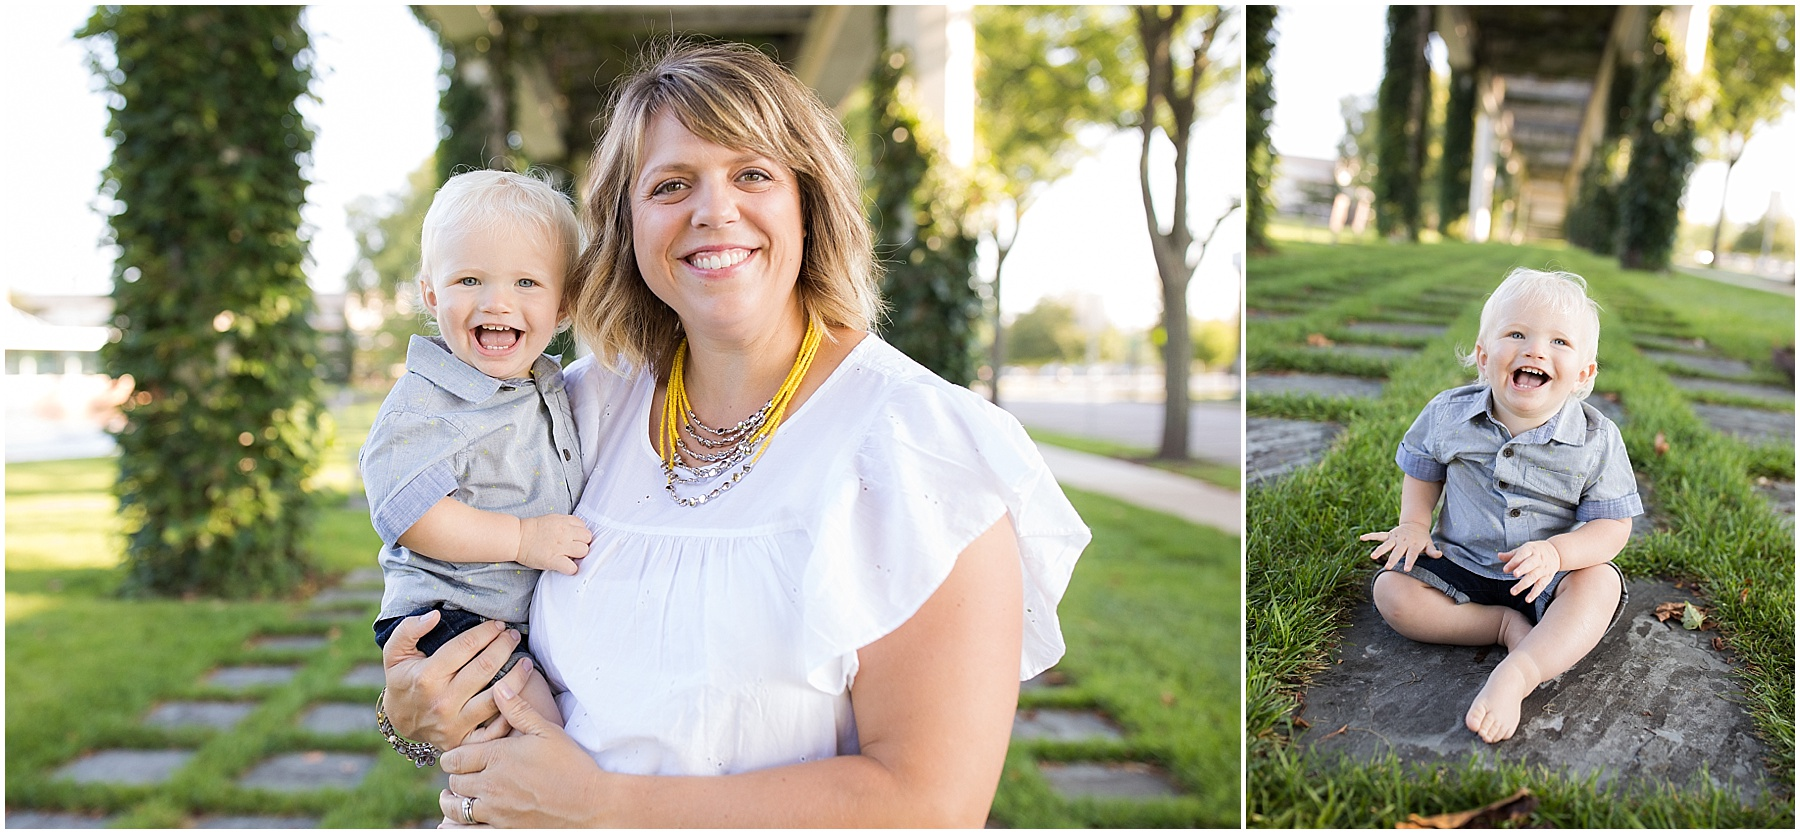 A mother and her one year old baby boy, Columbus Family Photography, Raindancer Studios